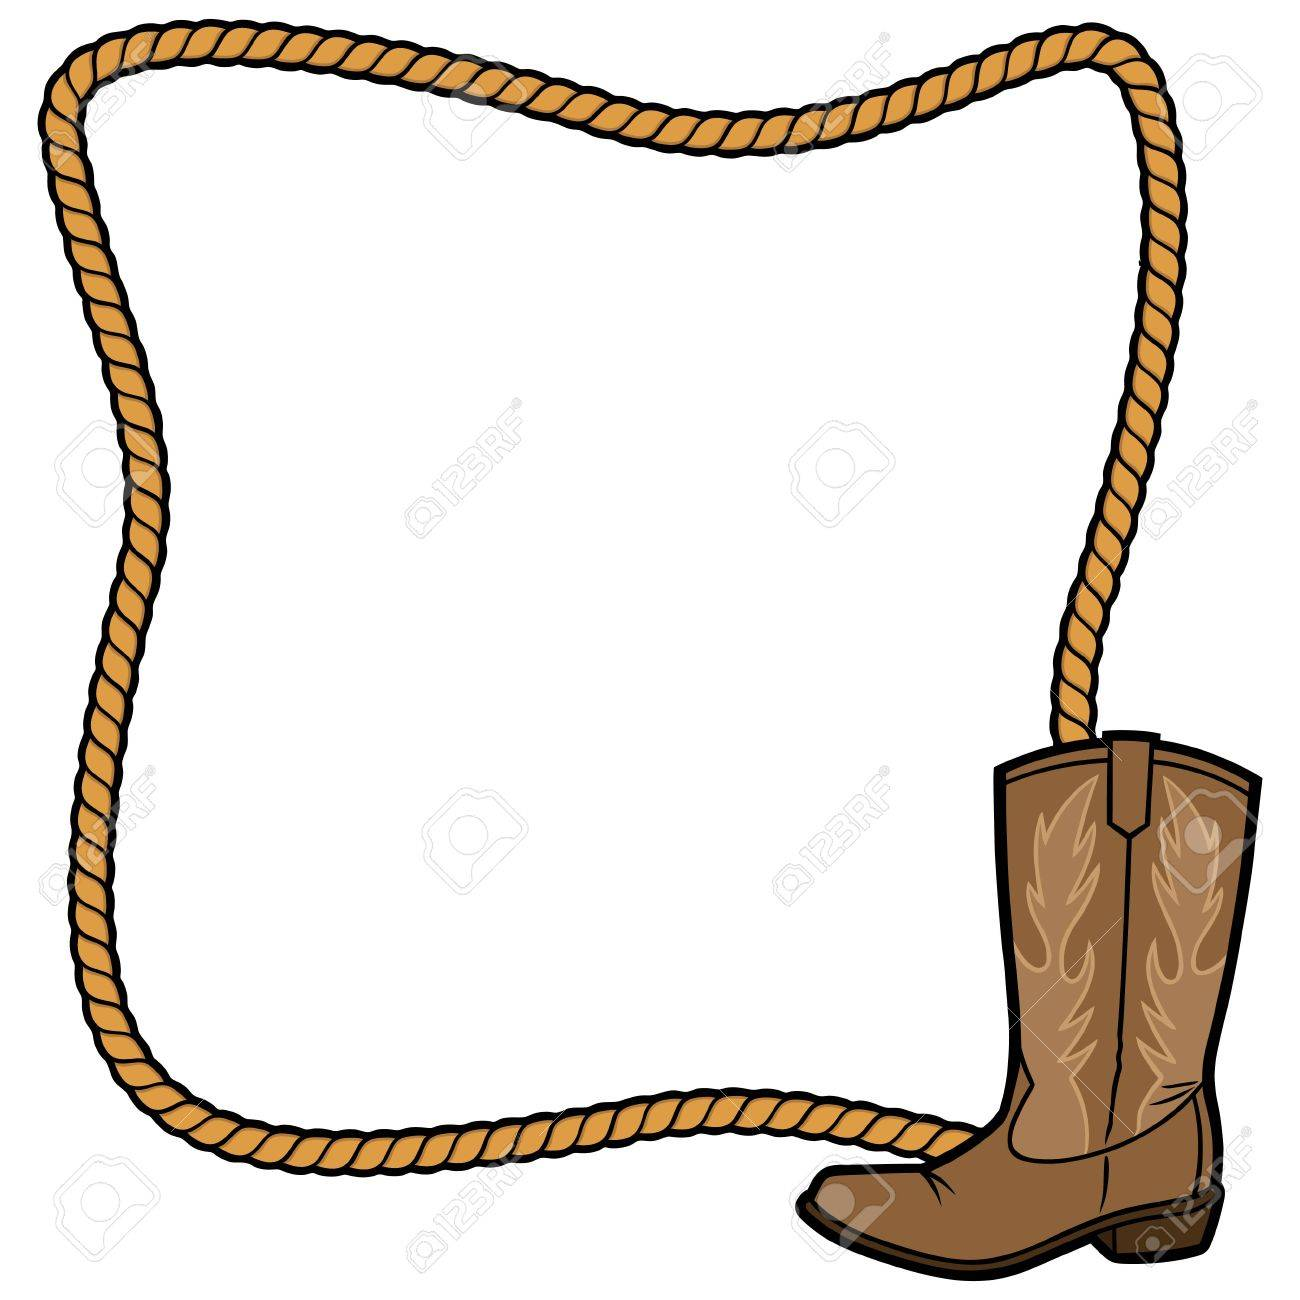 hight resolution of rope frame and cowboy boot stock vector 57875023